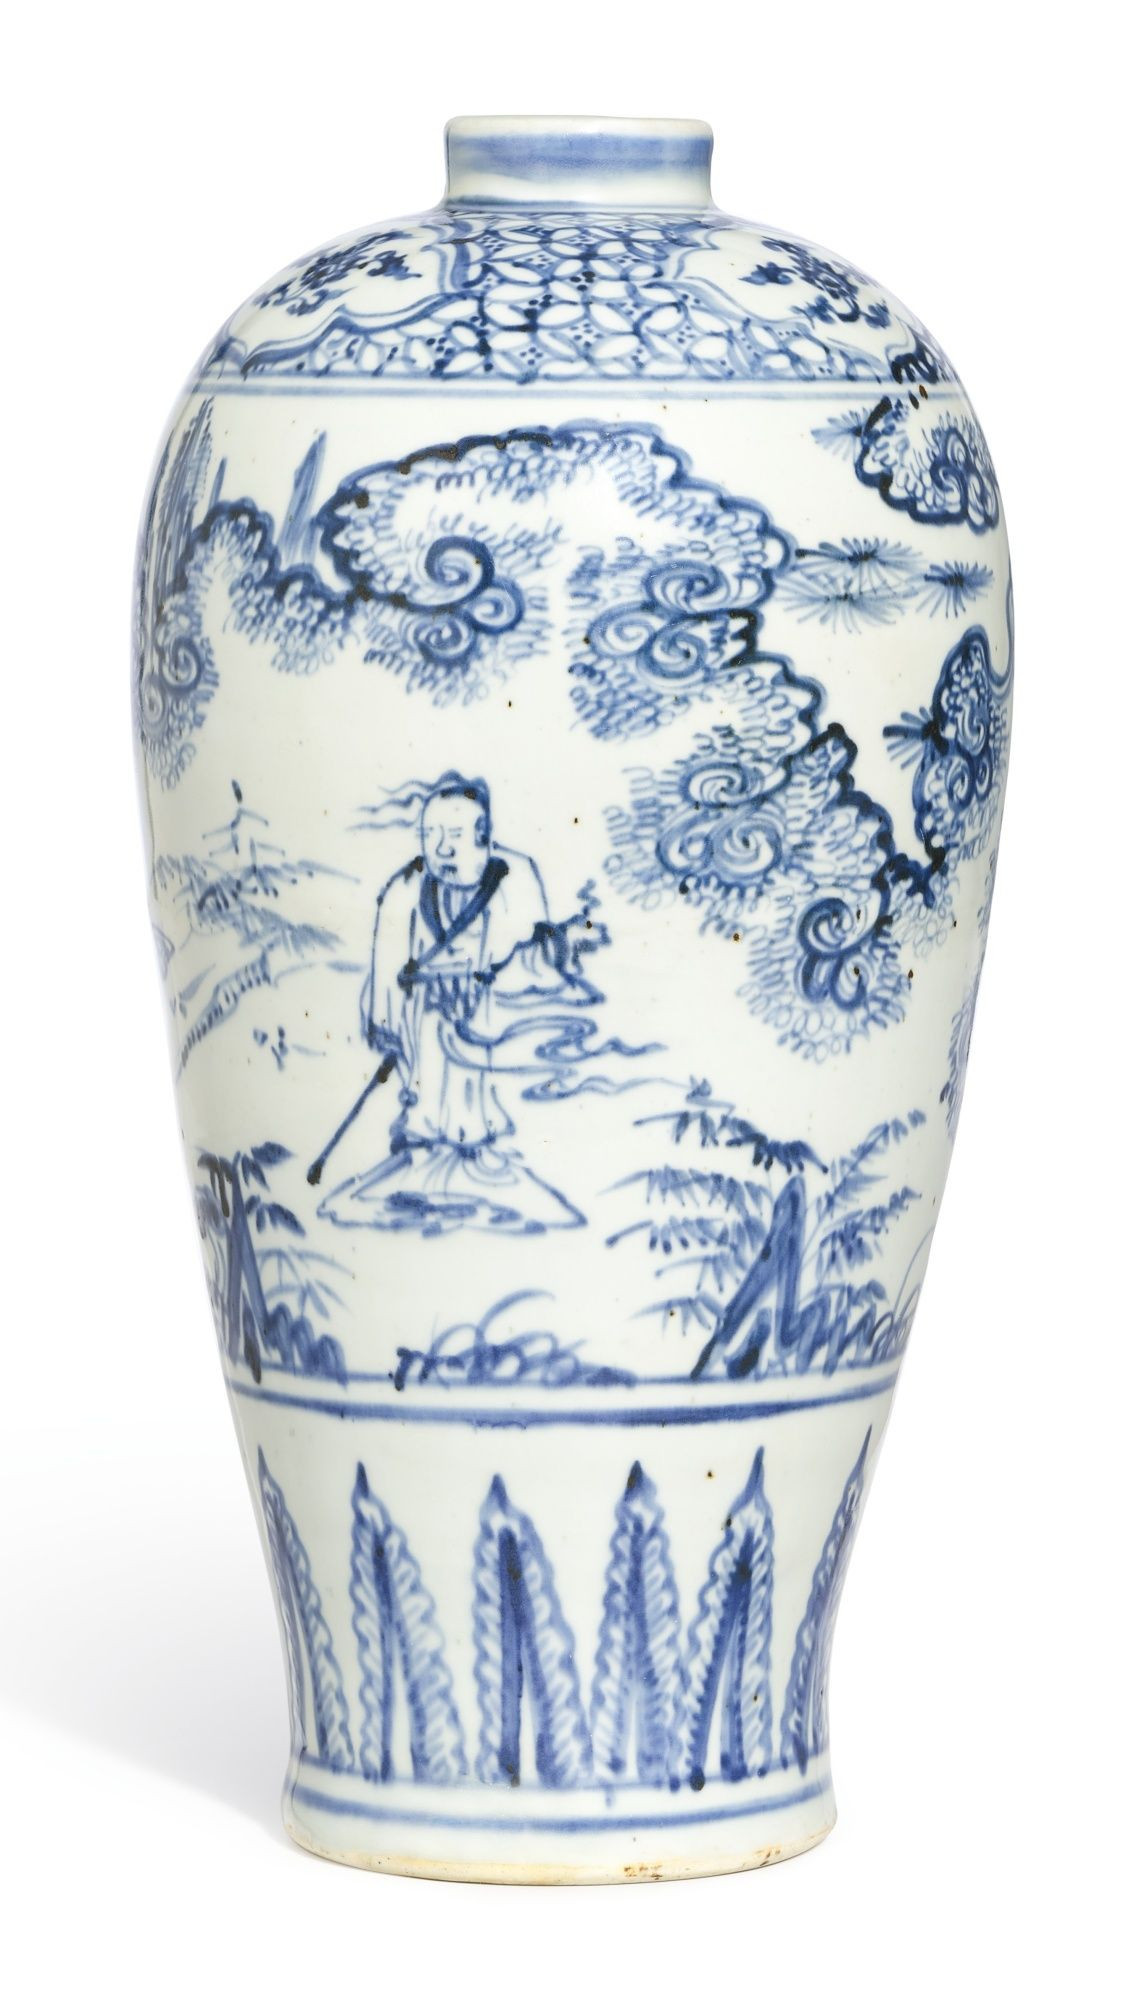 26 Awesome Ming Dynasty Vase for Sale